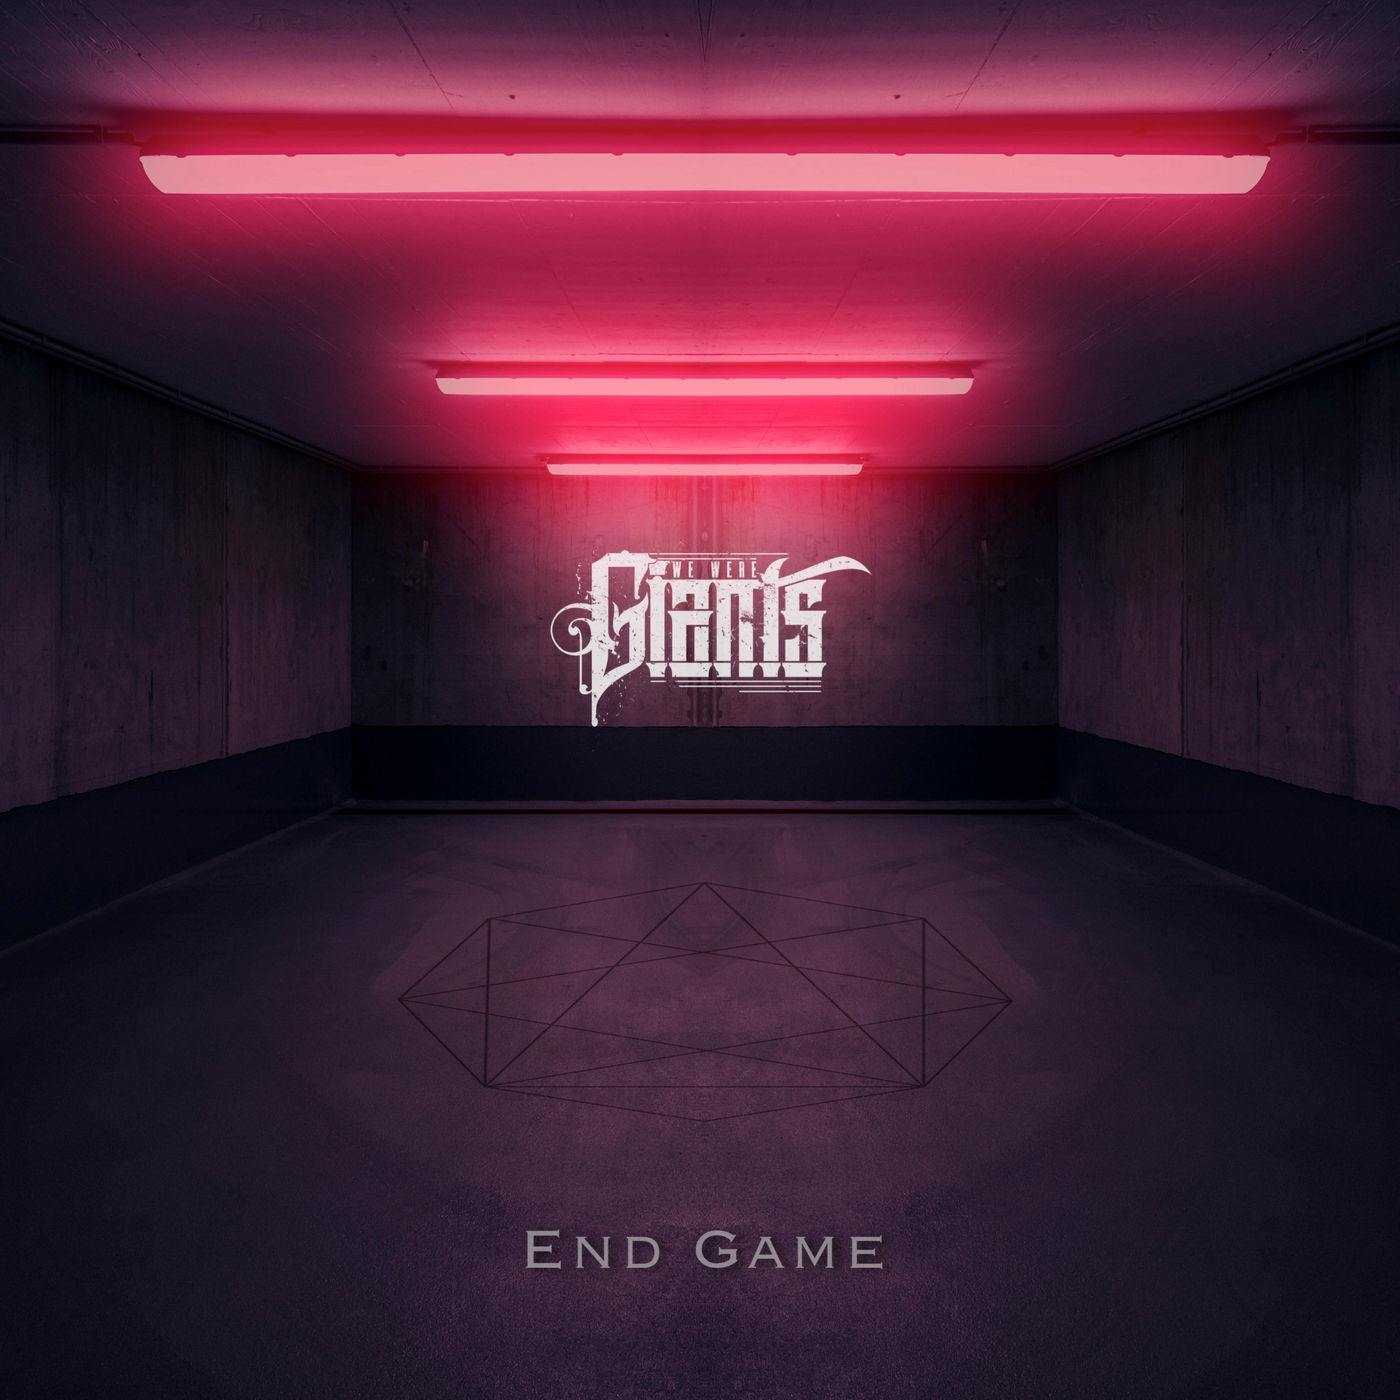 We Were Giants - End Game [single] (2020)